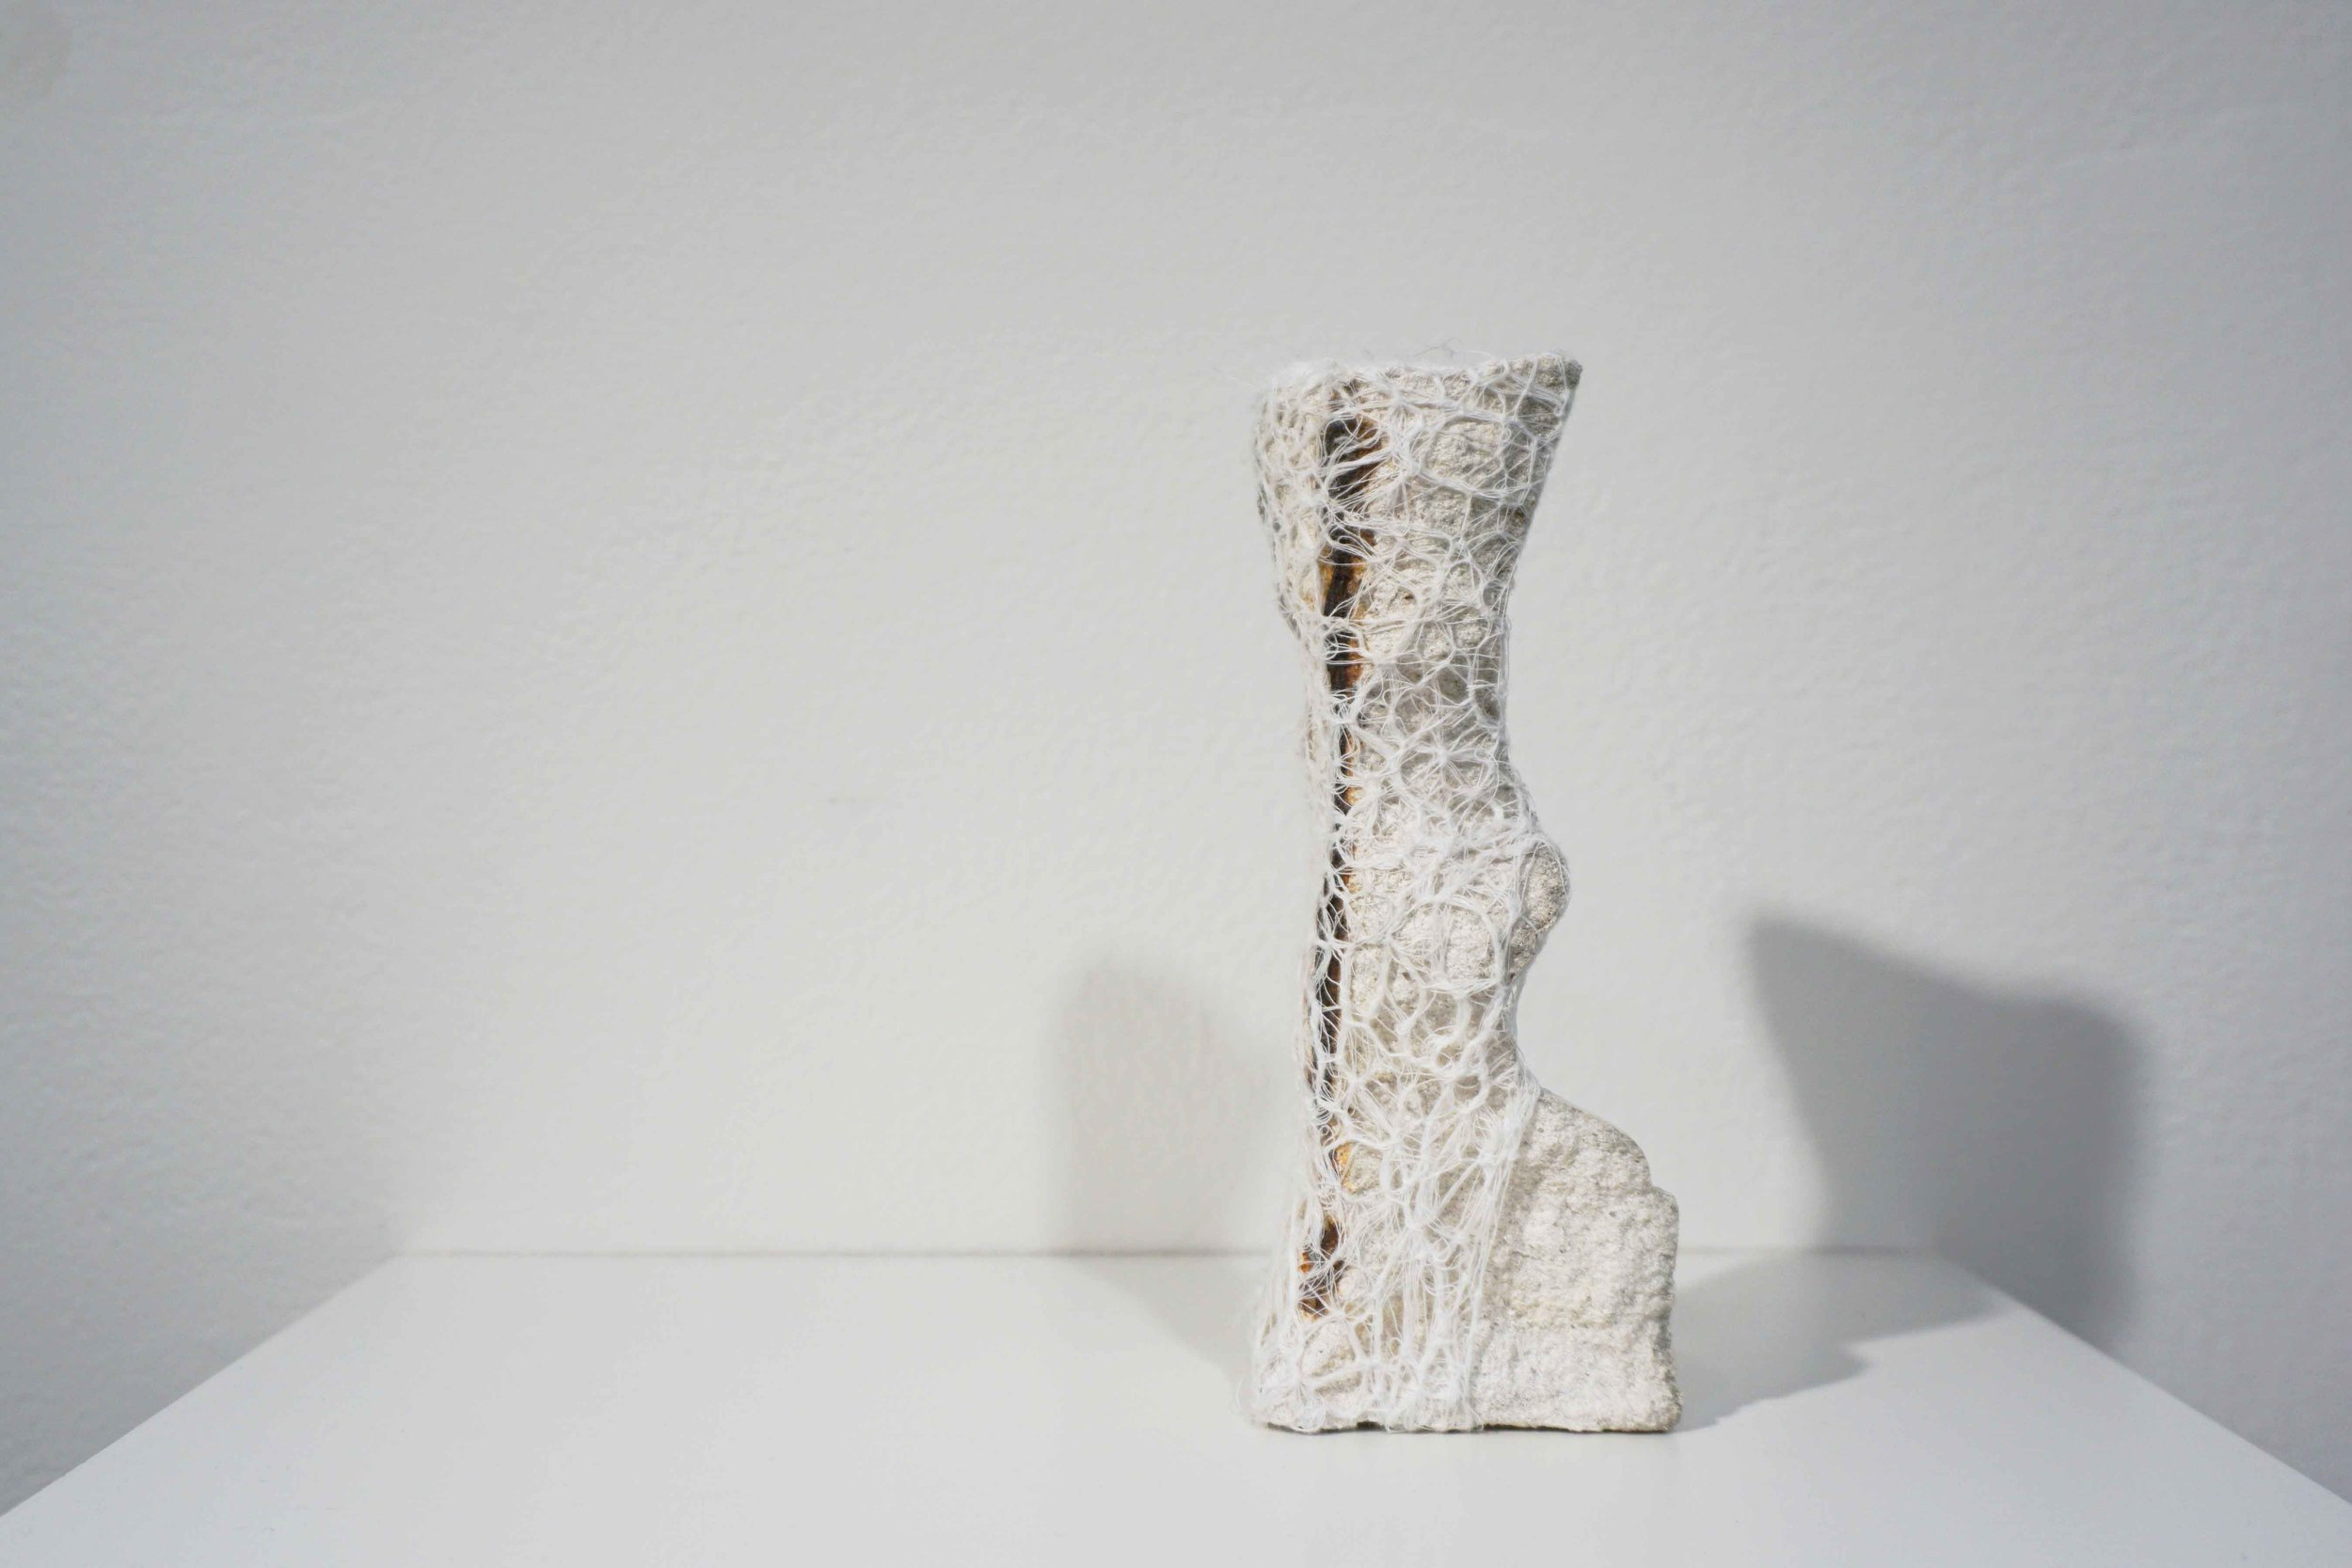 13. Melanie Dare,  Mending broken boundaries series  (l), 2019, concrete fence pillar, gauze and thread, dimensions variable, $560 or available for $3,300 as a series